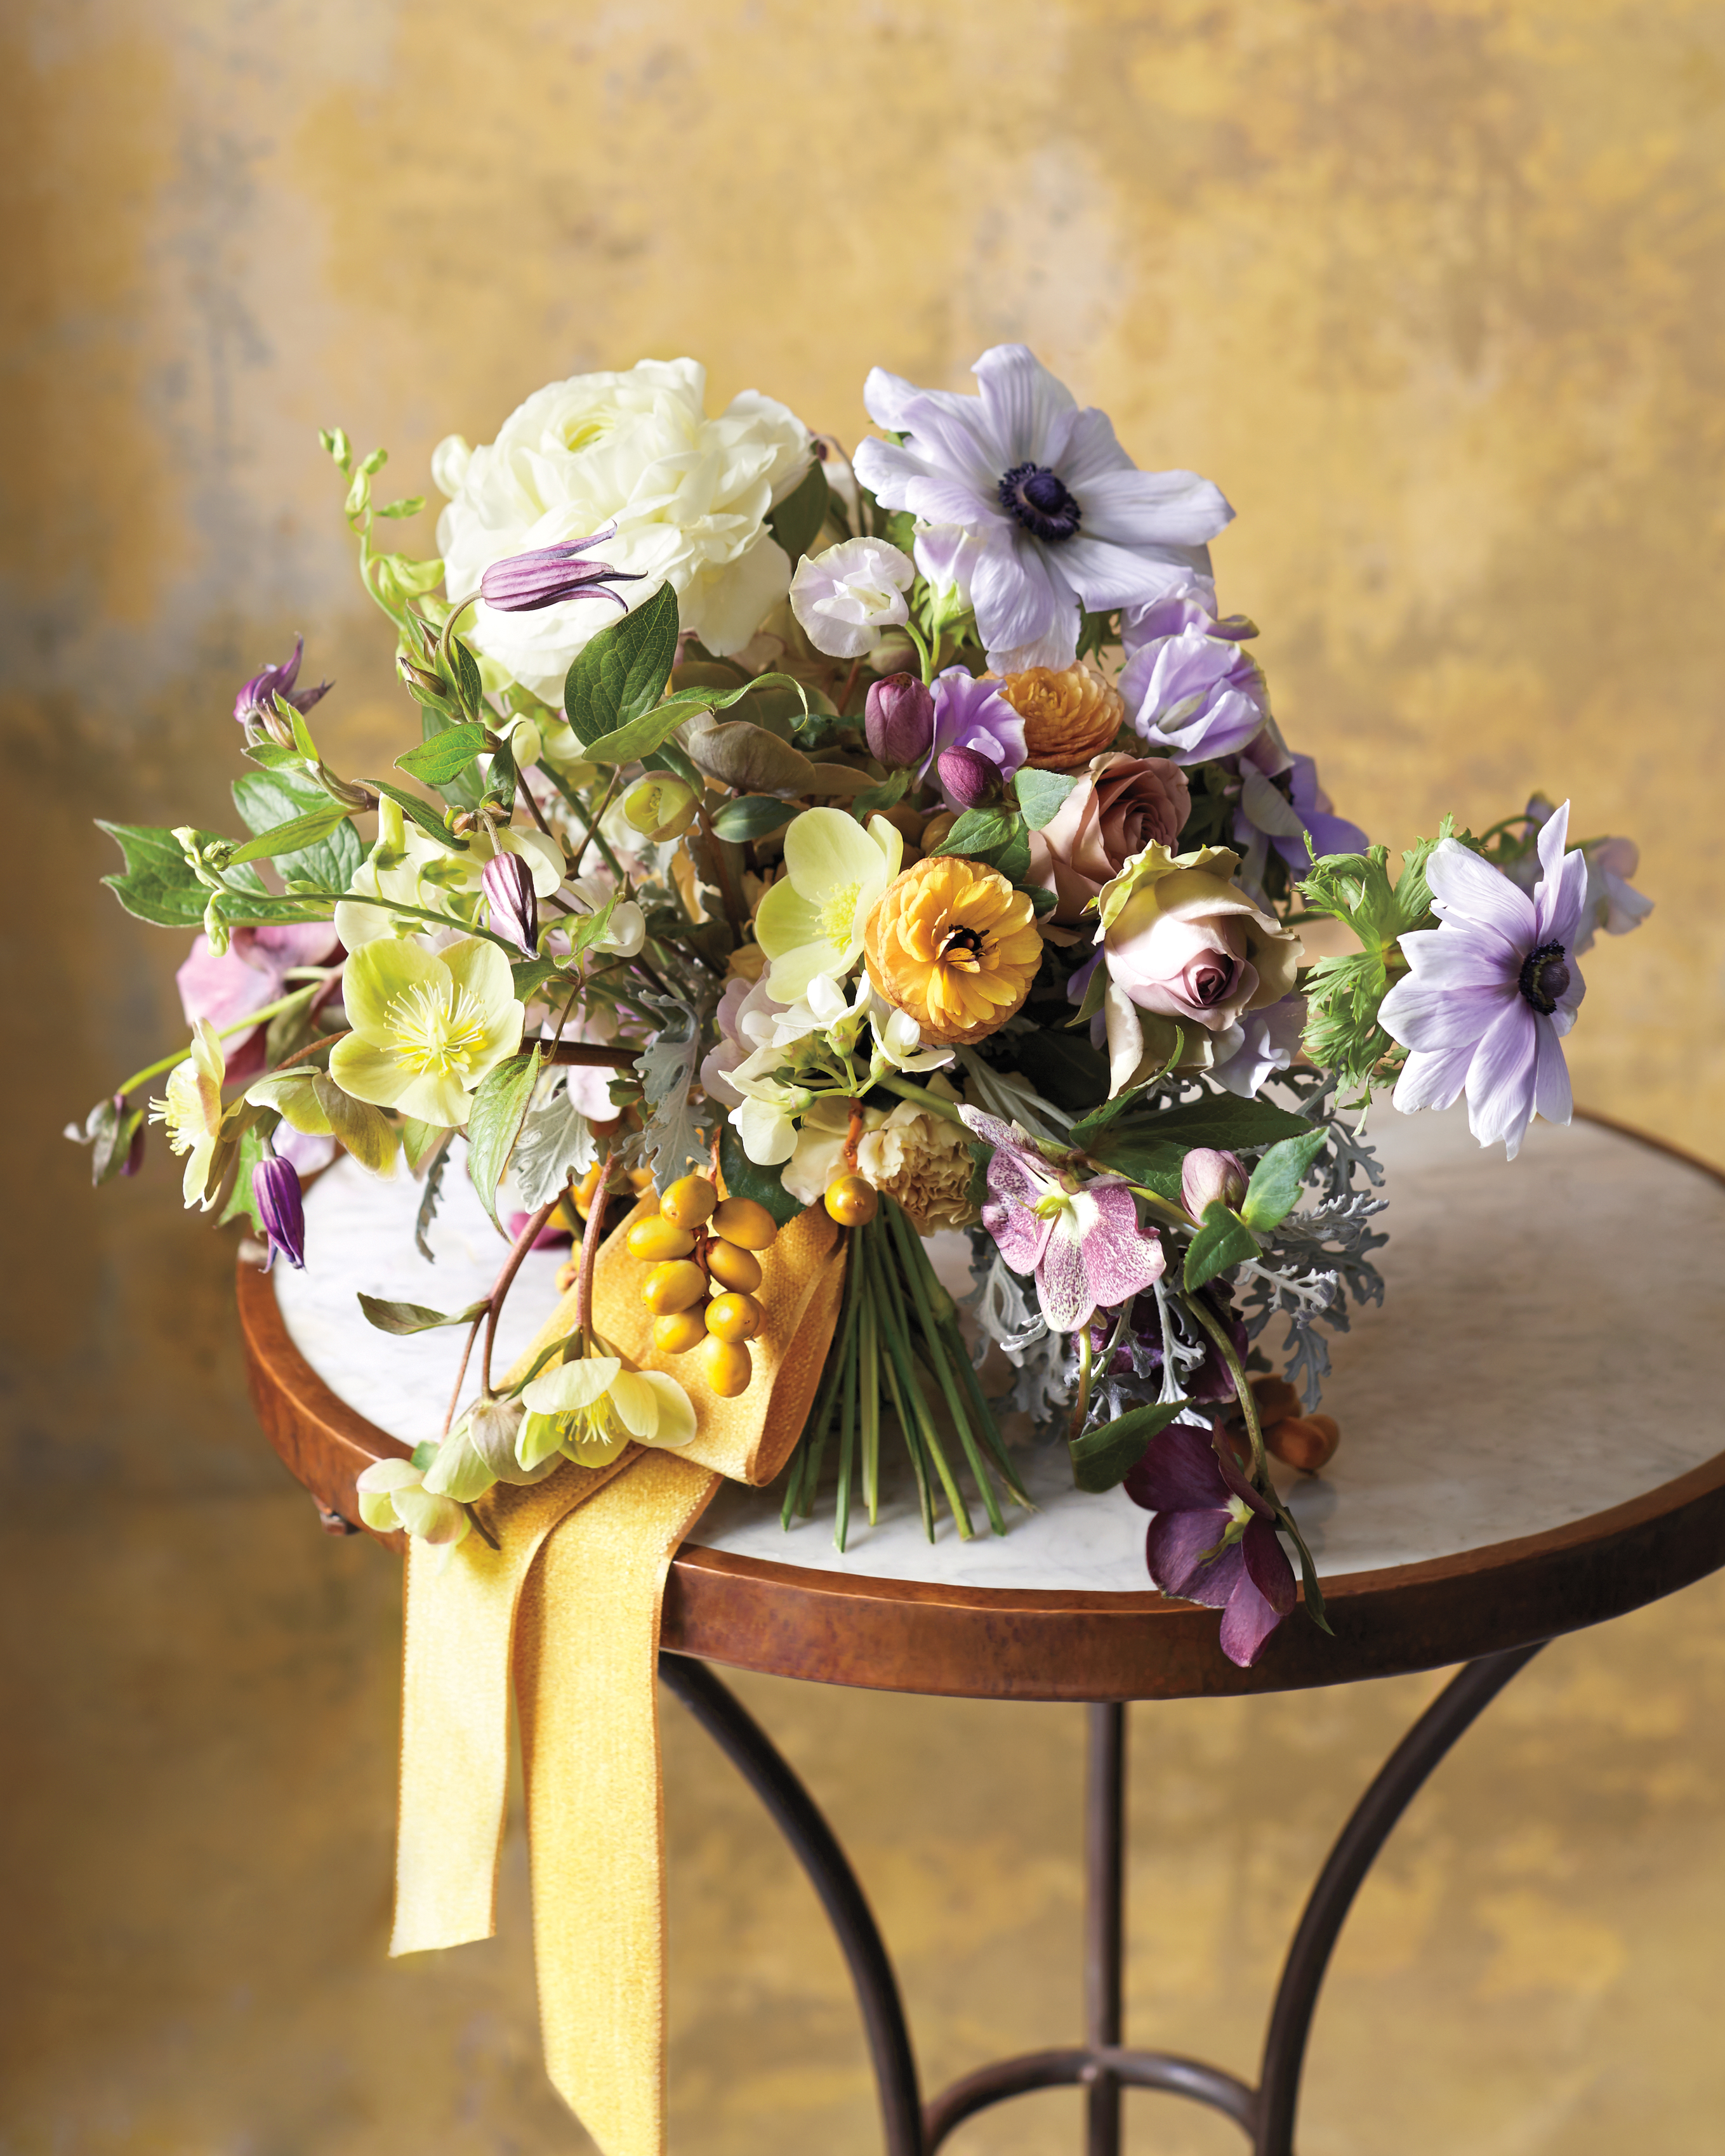 bouquet-099-mwd110998.jpg